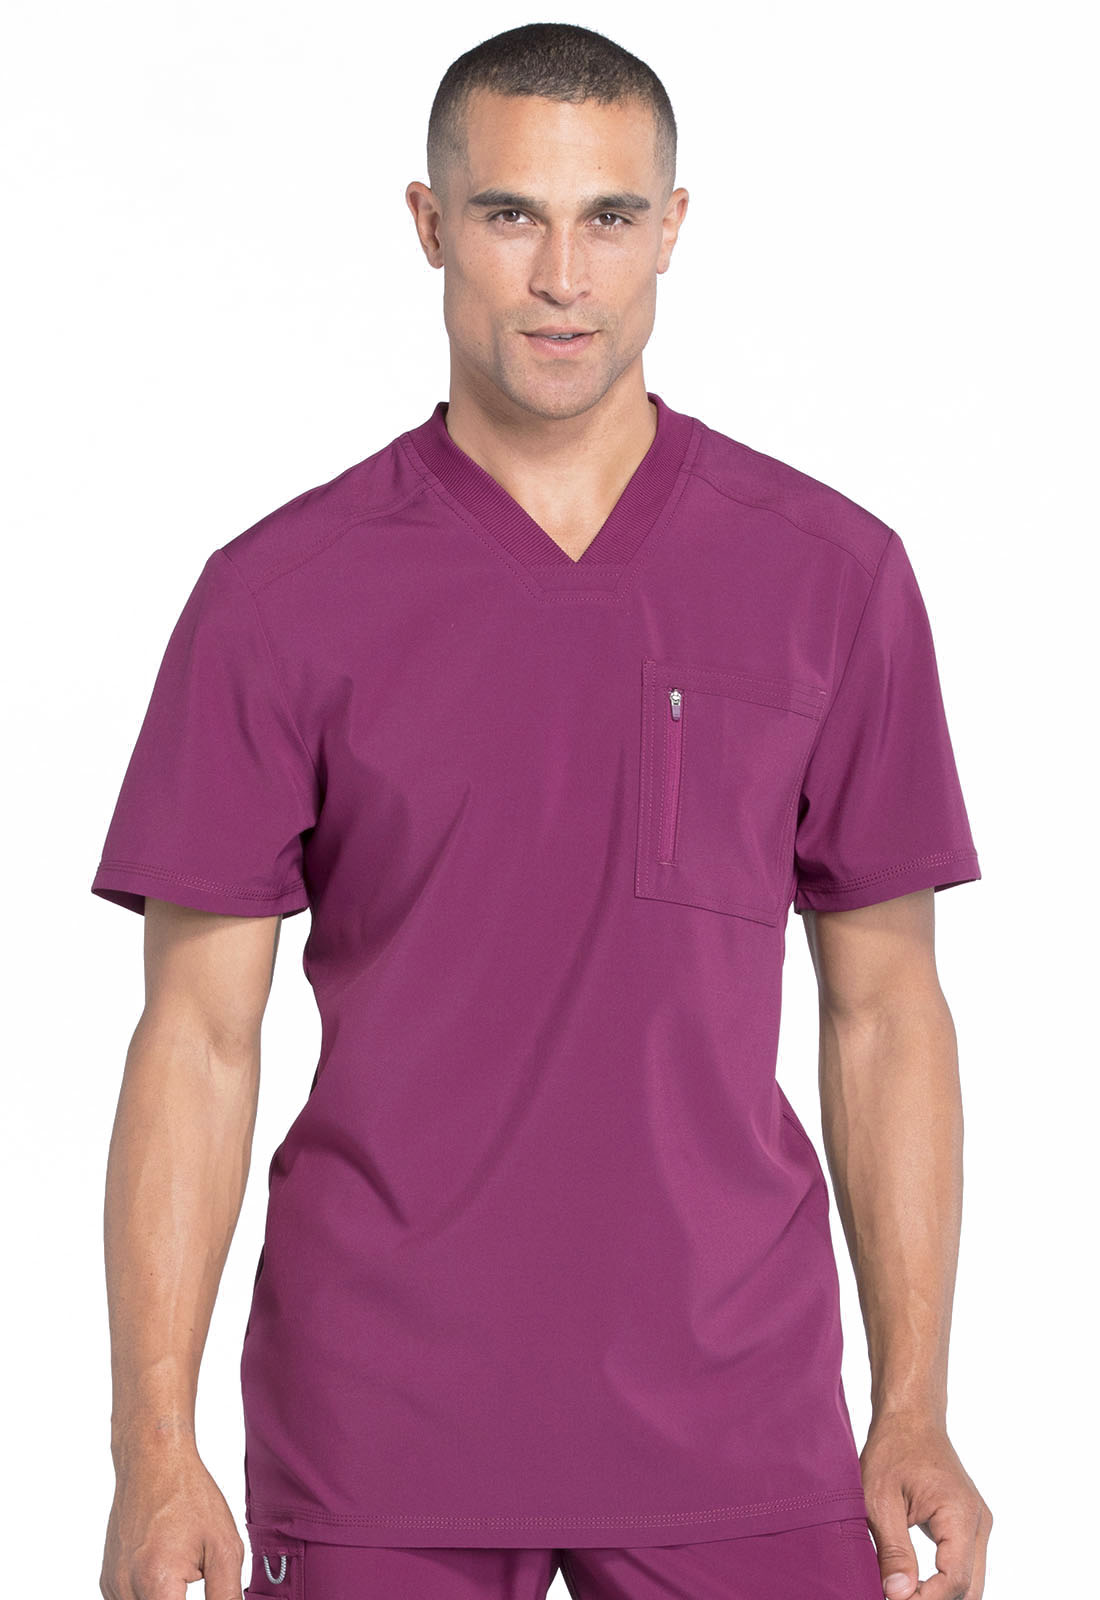 5a0b1e4d3e5 Infinity Men's V-Neck Top in Wine CK910A-WNPS from Cherokee Scrubs ...